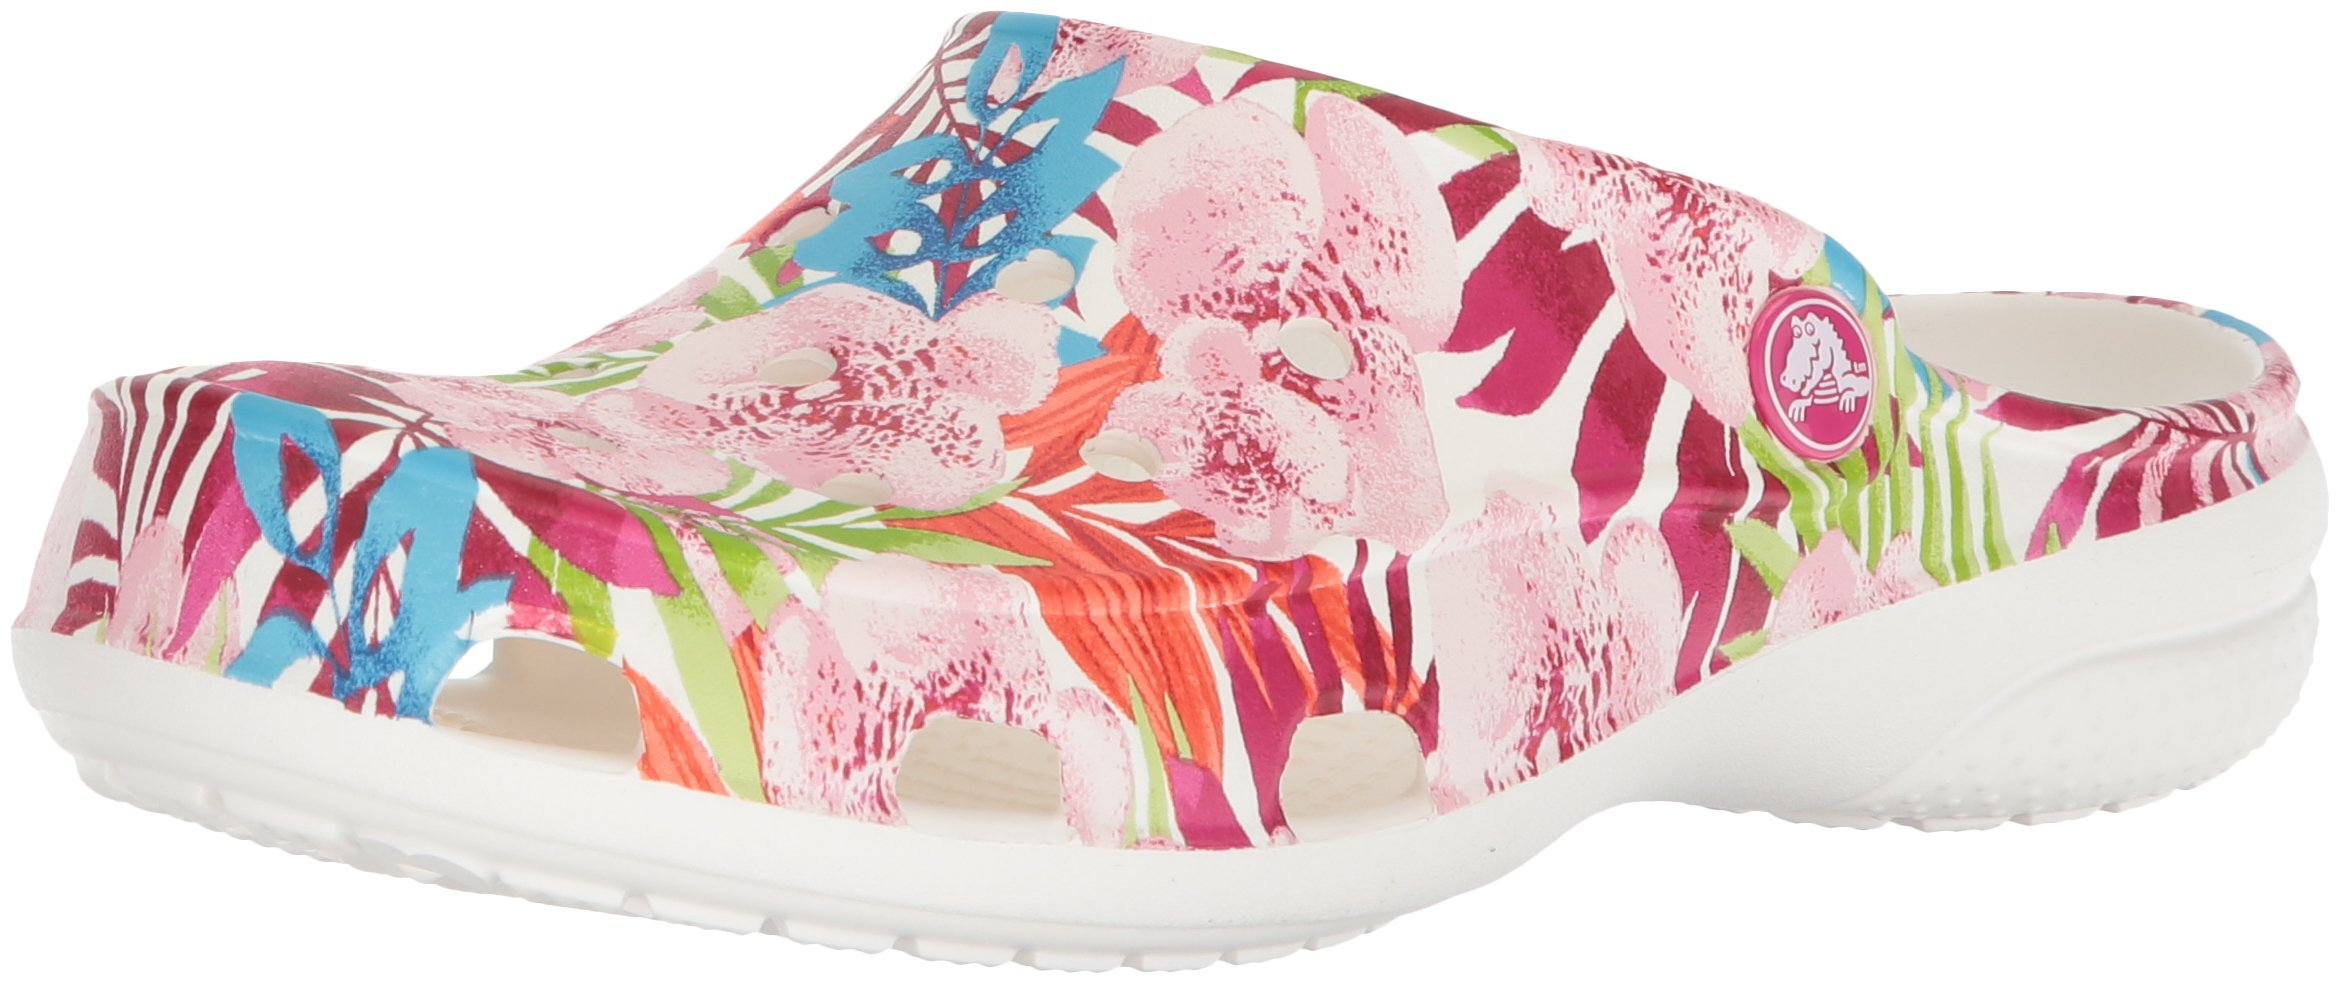 Crocs Freesail Women's Graphic Clog, Tropical Floral/White, 9 M US